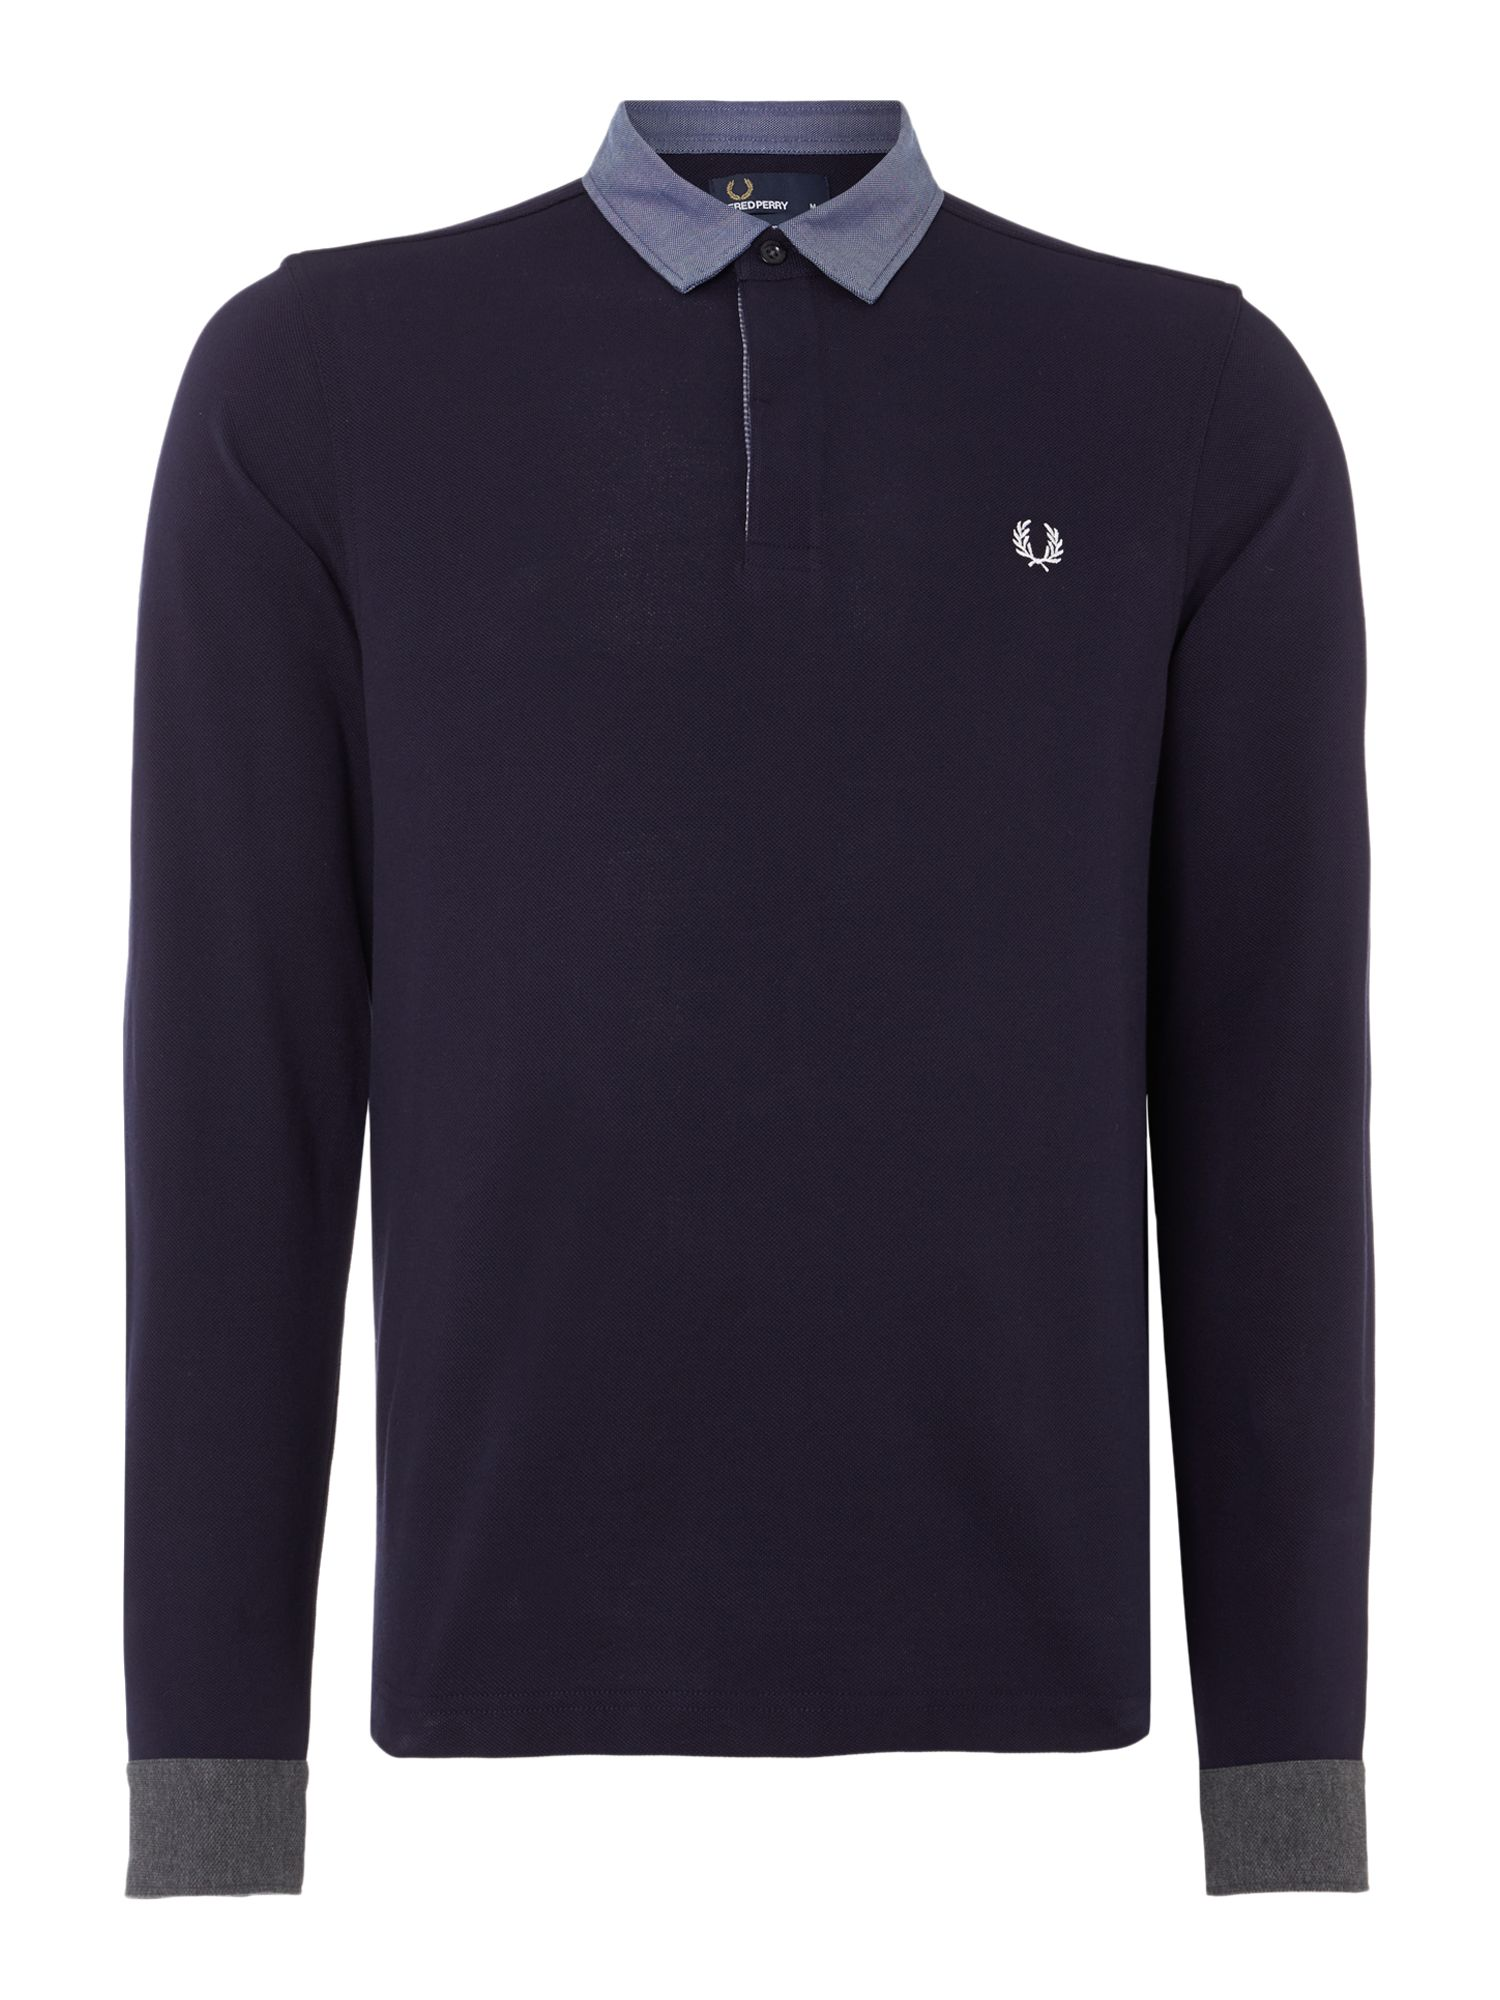 Mens Fred Perry Long Sleeve Woven Trim Pique Polo Shirt Navy